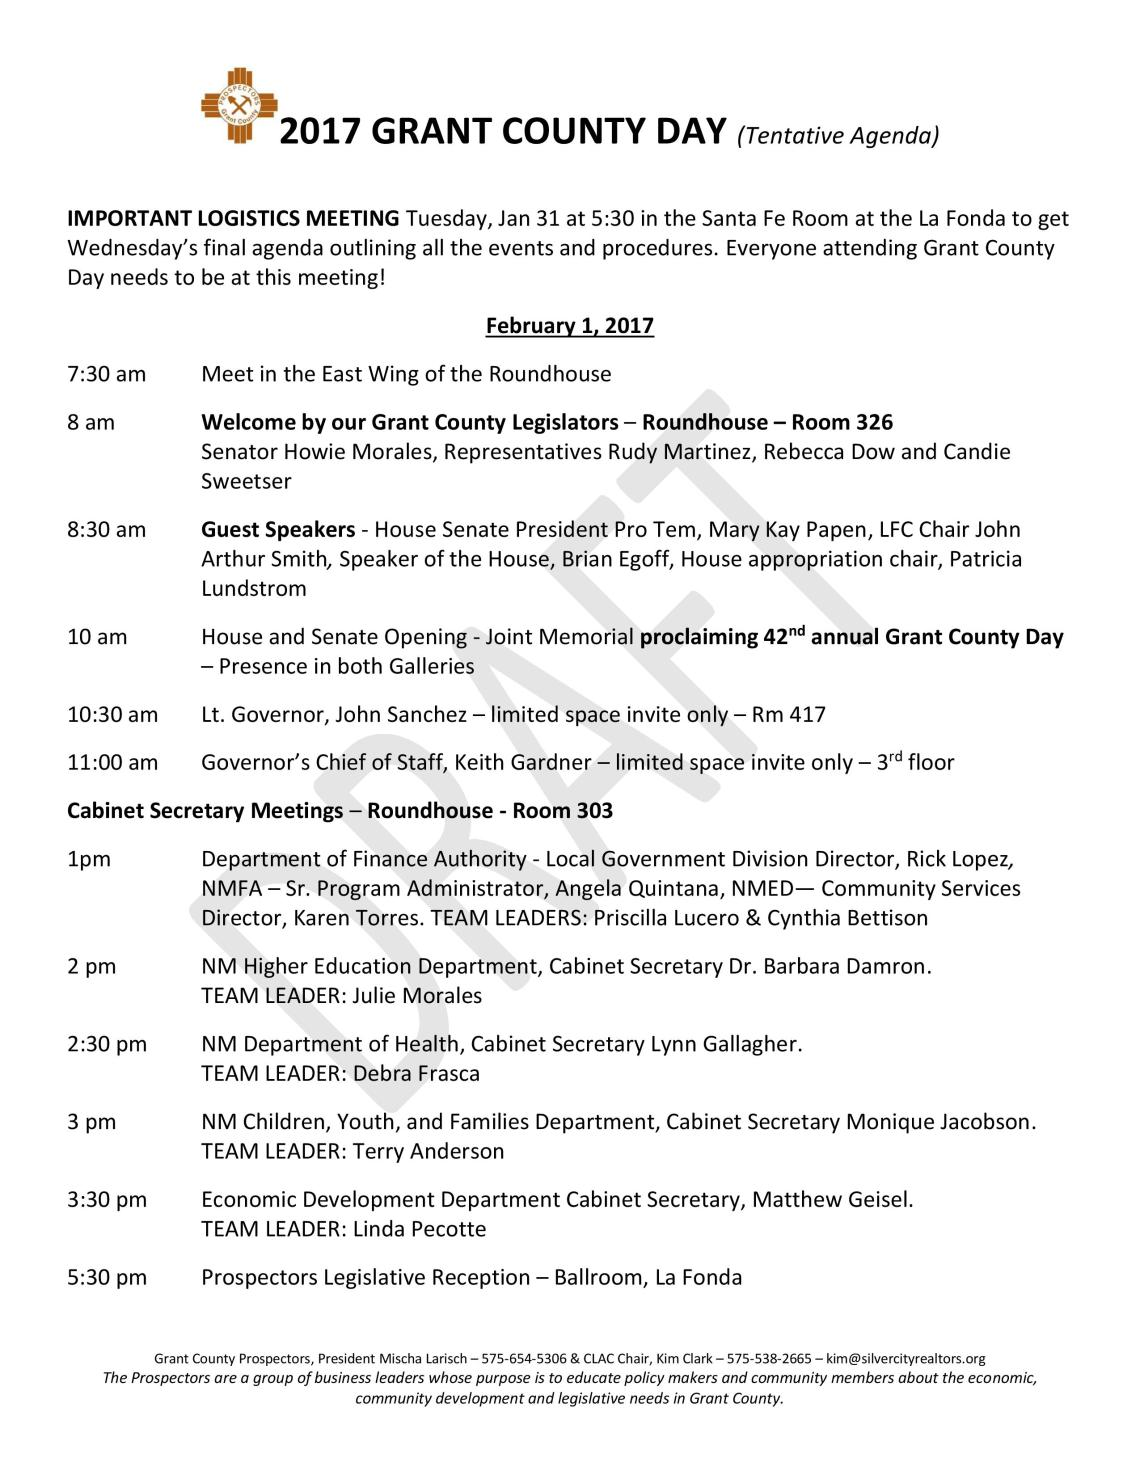 Tentative Meeting Schedule - 2017 Grant County Day-page-001.jpg